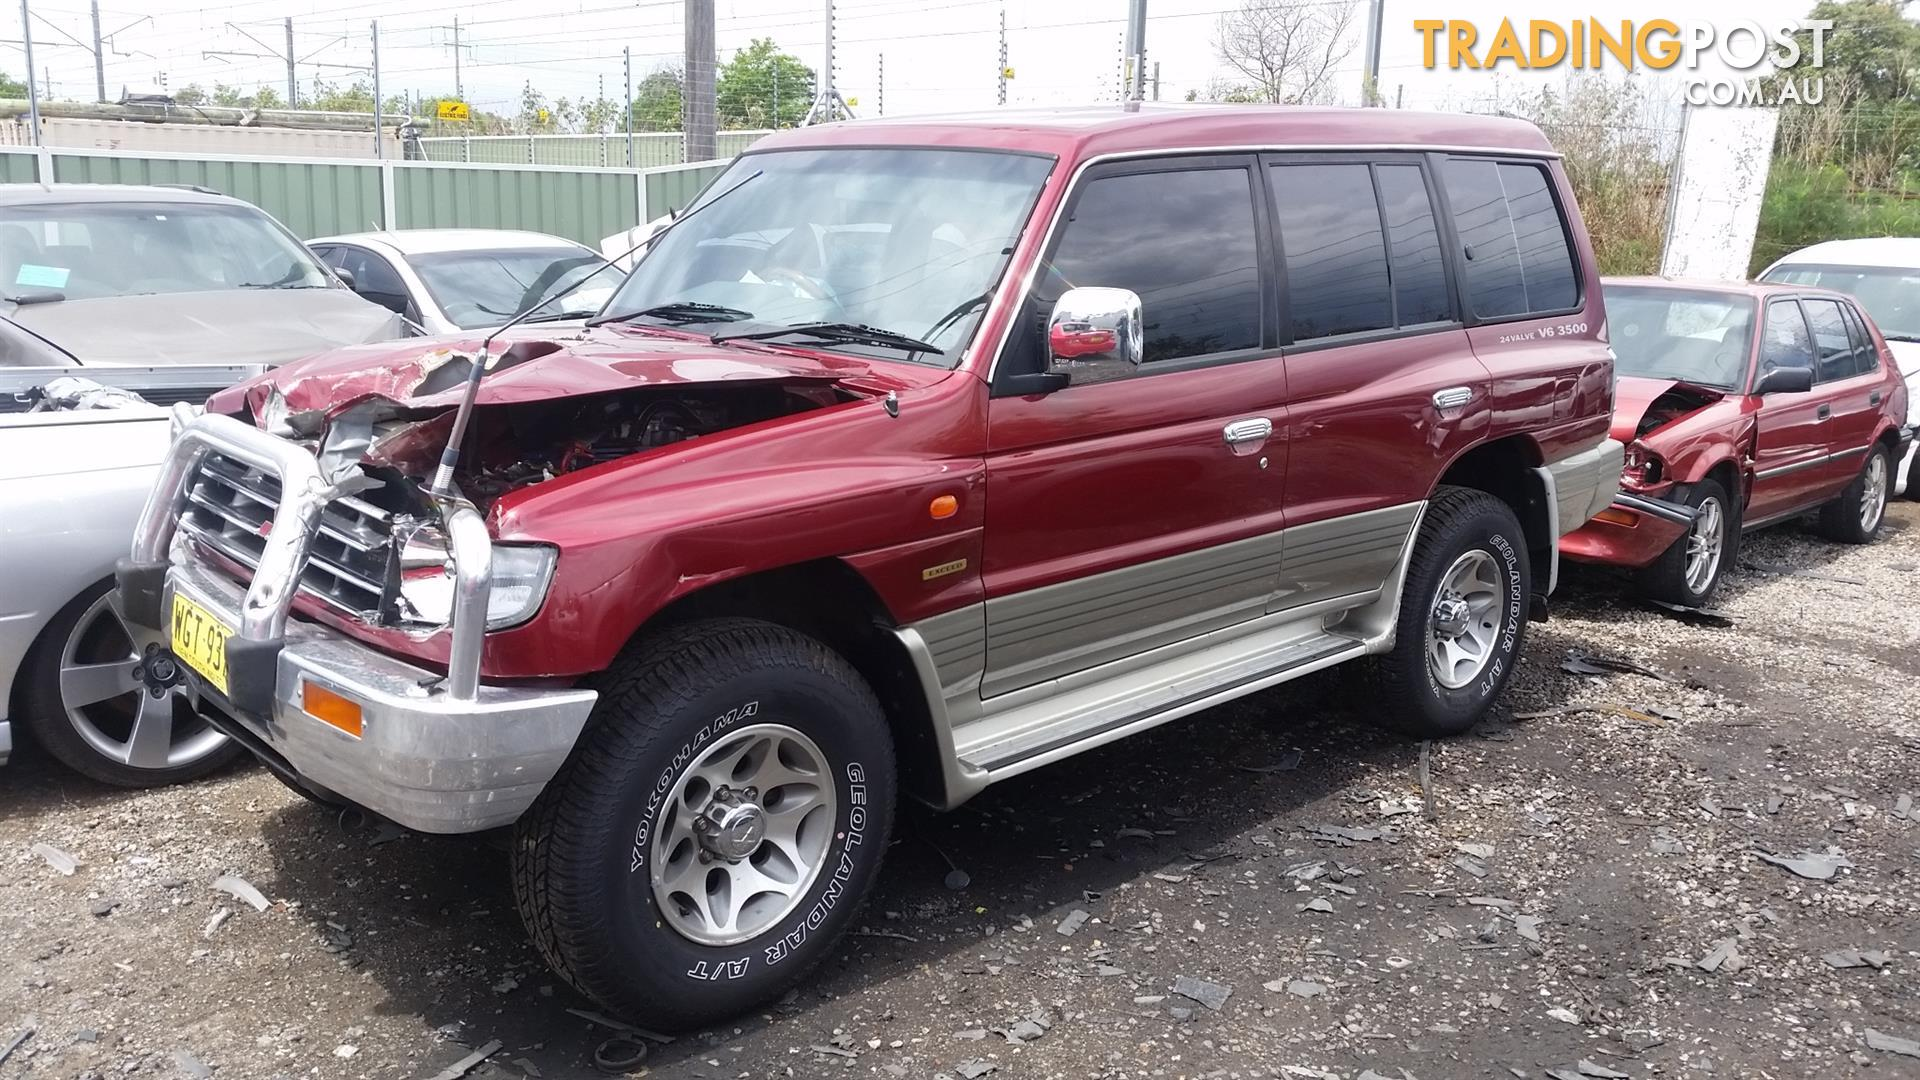 Cars for Sale Under 10000 Nsw Fresh Mitsubishi Pajaro Exceed 4×4 for Sale In St Clair Nsw